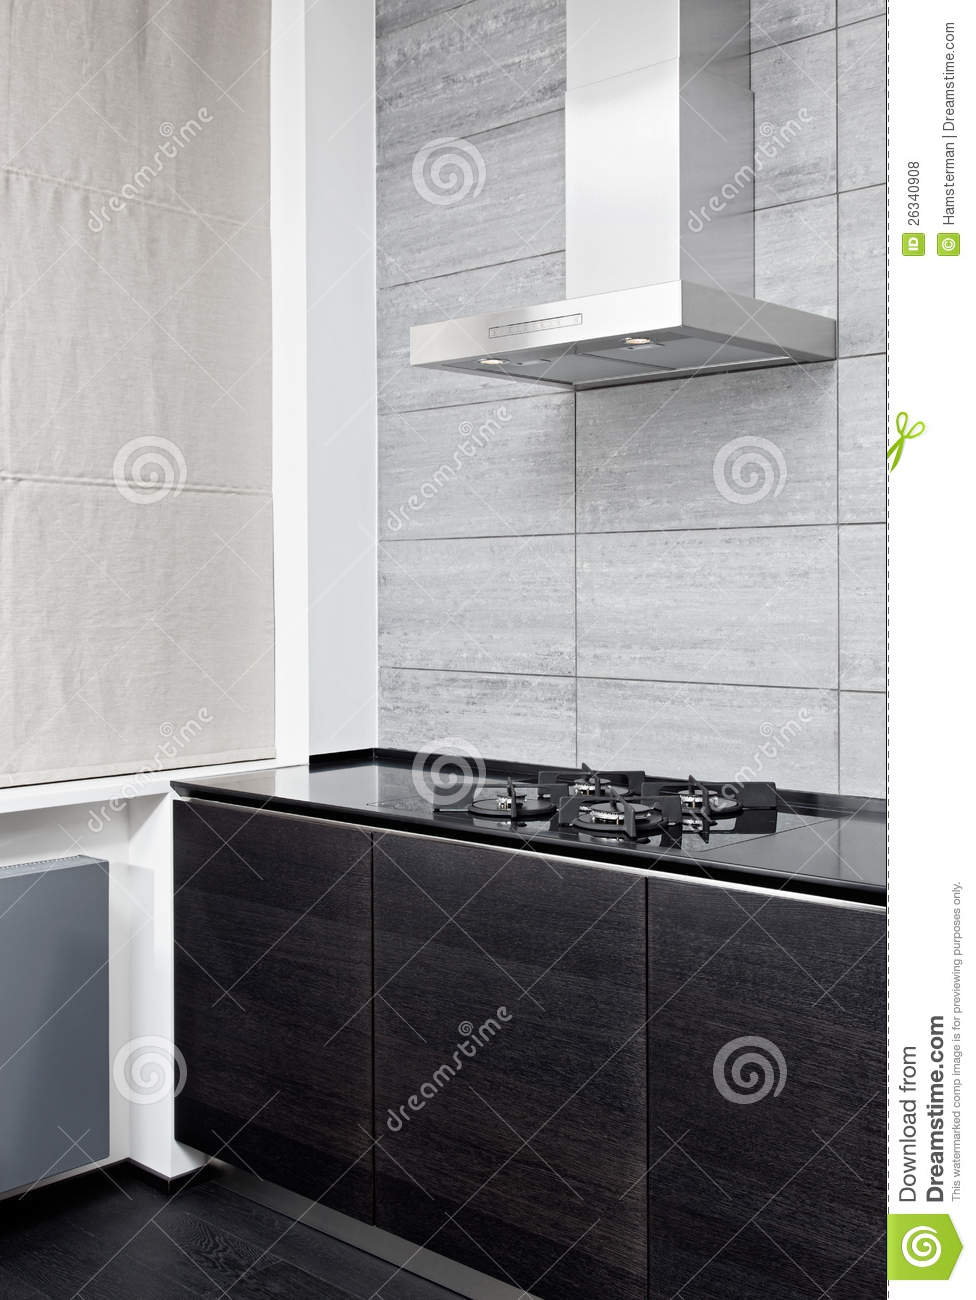 build kitchen table hotels with kitchens in ocean city md gas stove and cooking hood on modern royalty free ...